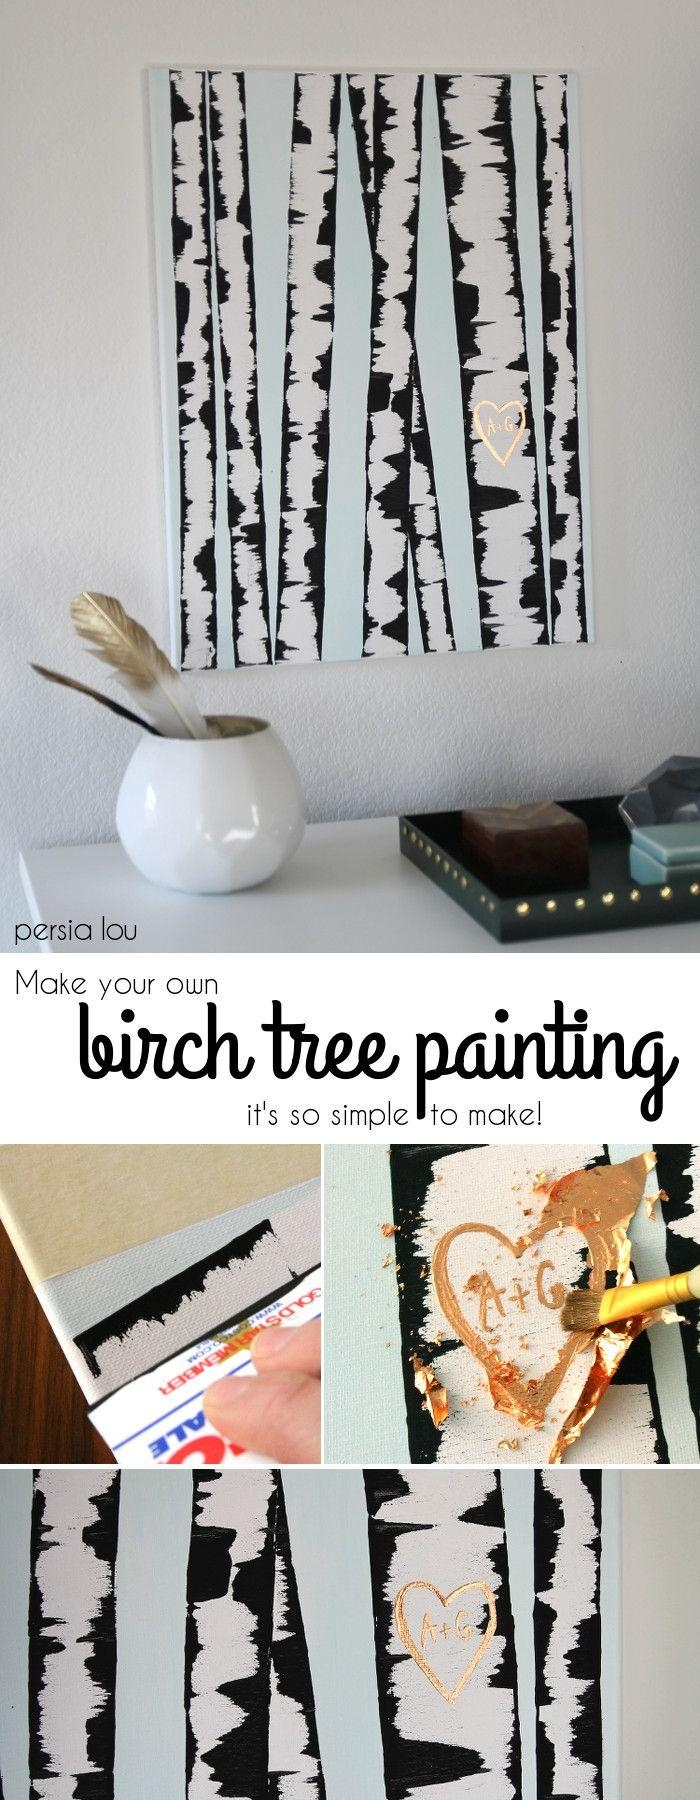 Best 25+ Homemade Wall Decorations Ideas On Pinterest | Homemade Within Ouija Board Wall Art (View 8 of 20)